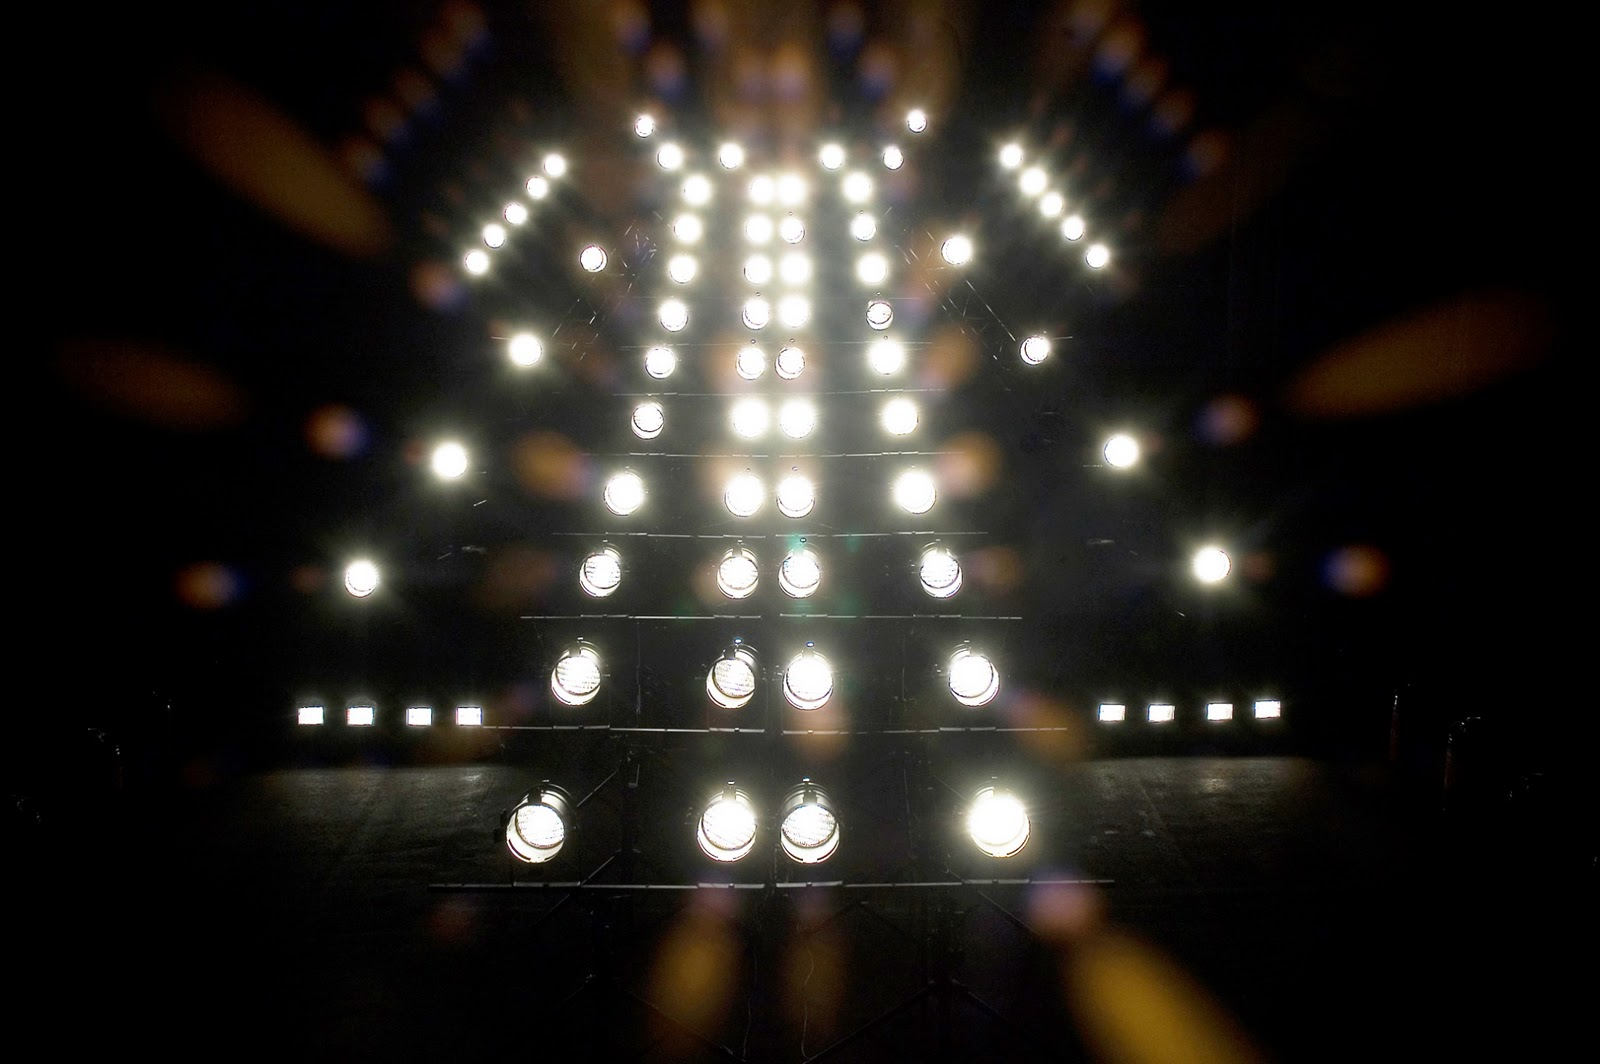 Formation of high wattage lamps. The lamps' electric current sound is looped loudly through a sound system.